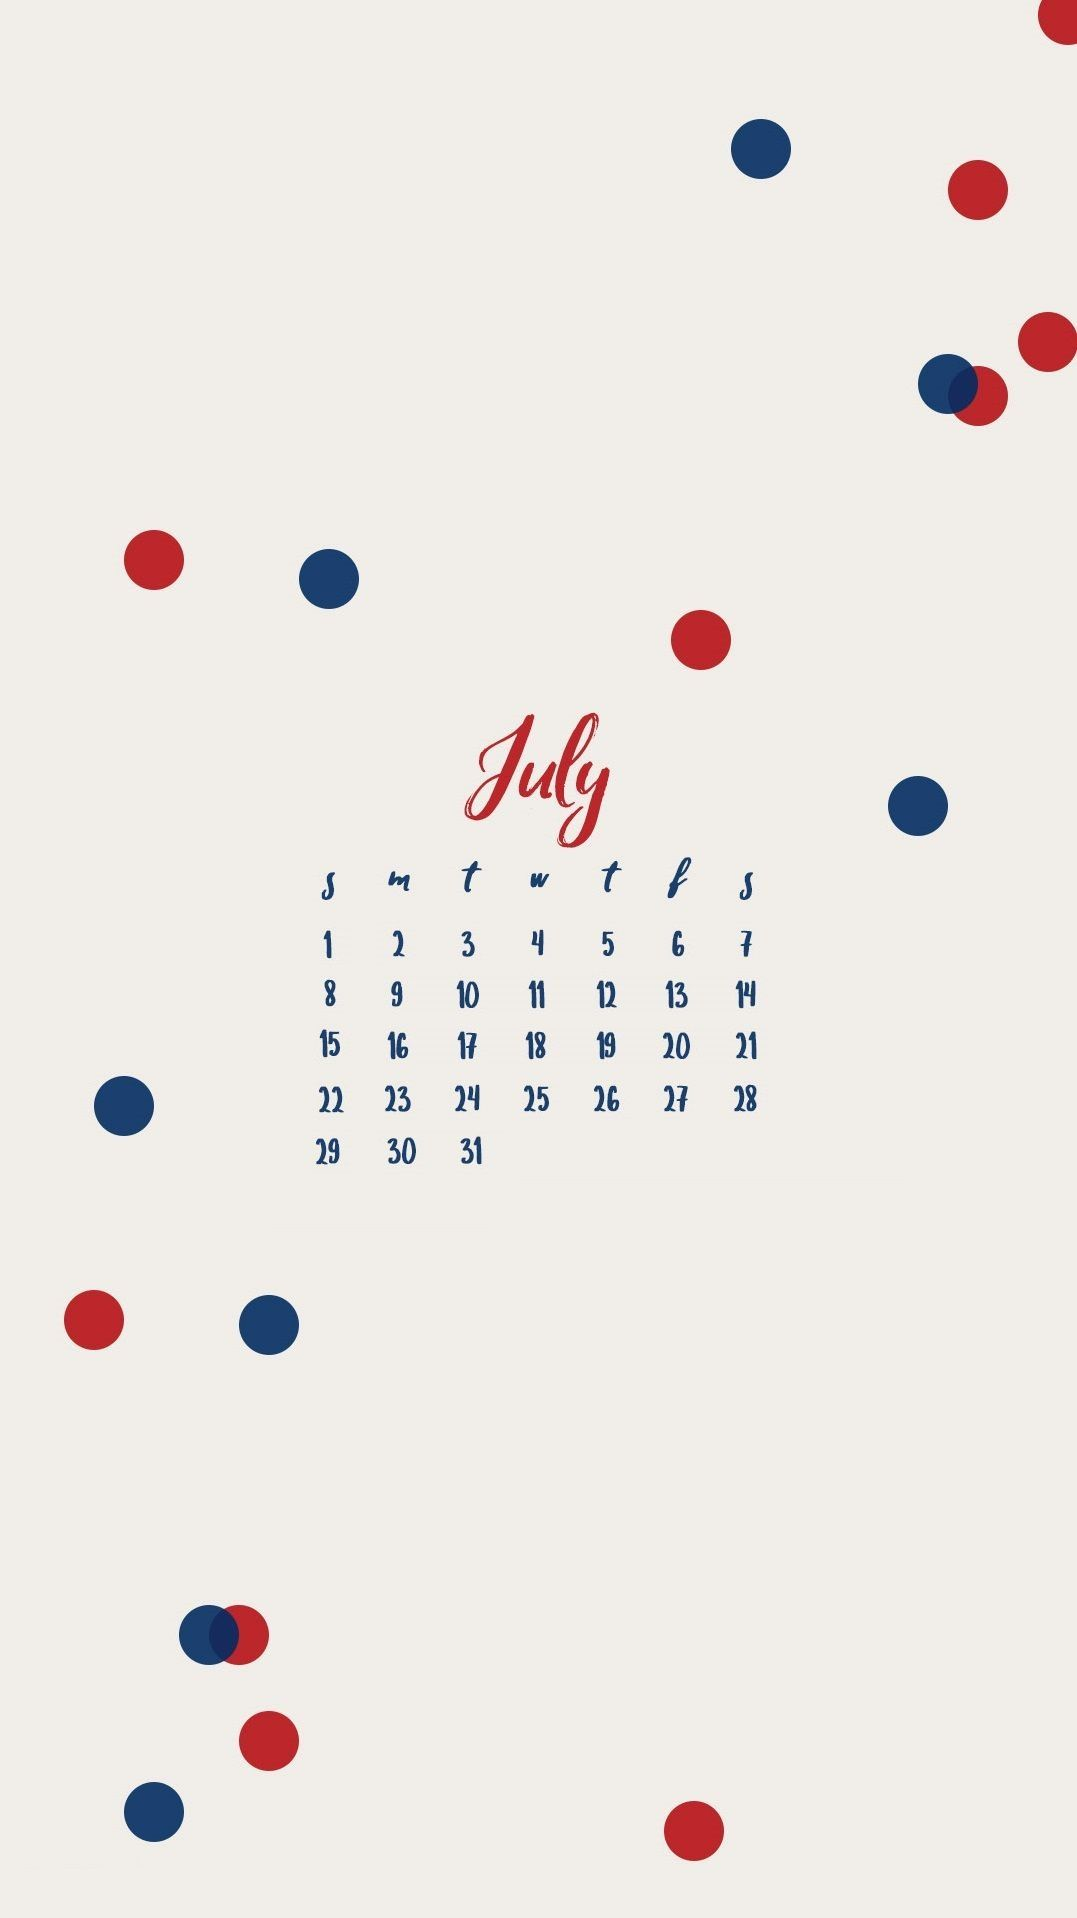 july 2019 iphone calendar designJuly 2019 iPhone Calendar 1077x1918